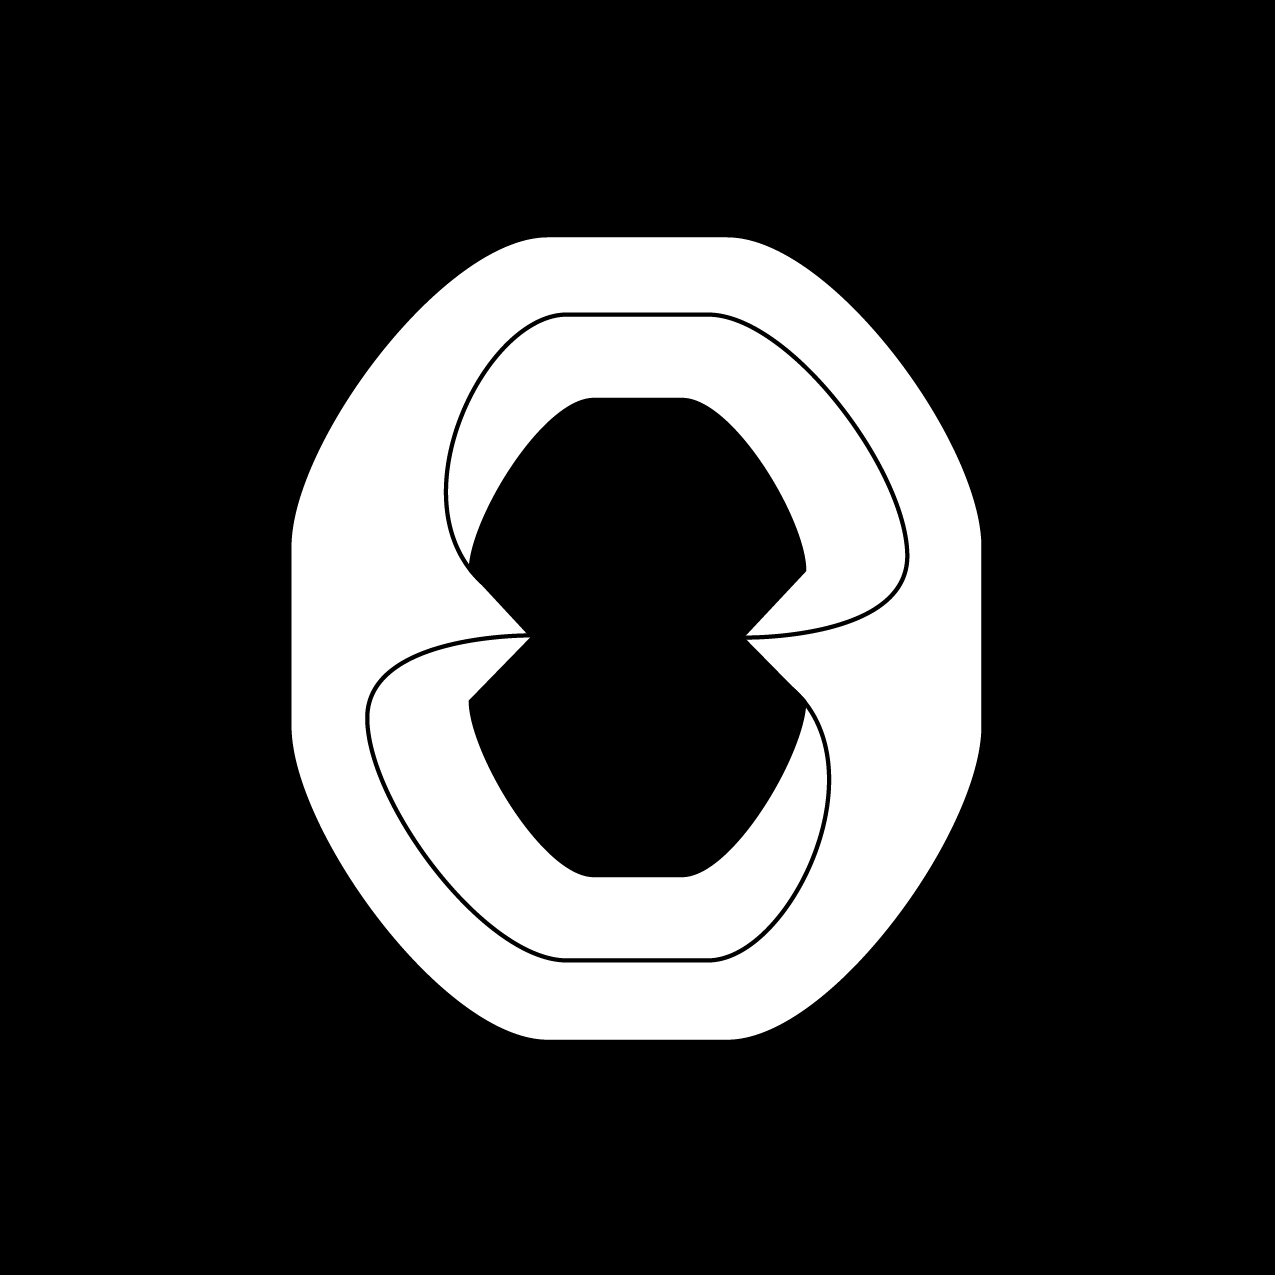 Letter O8 Design by Furia